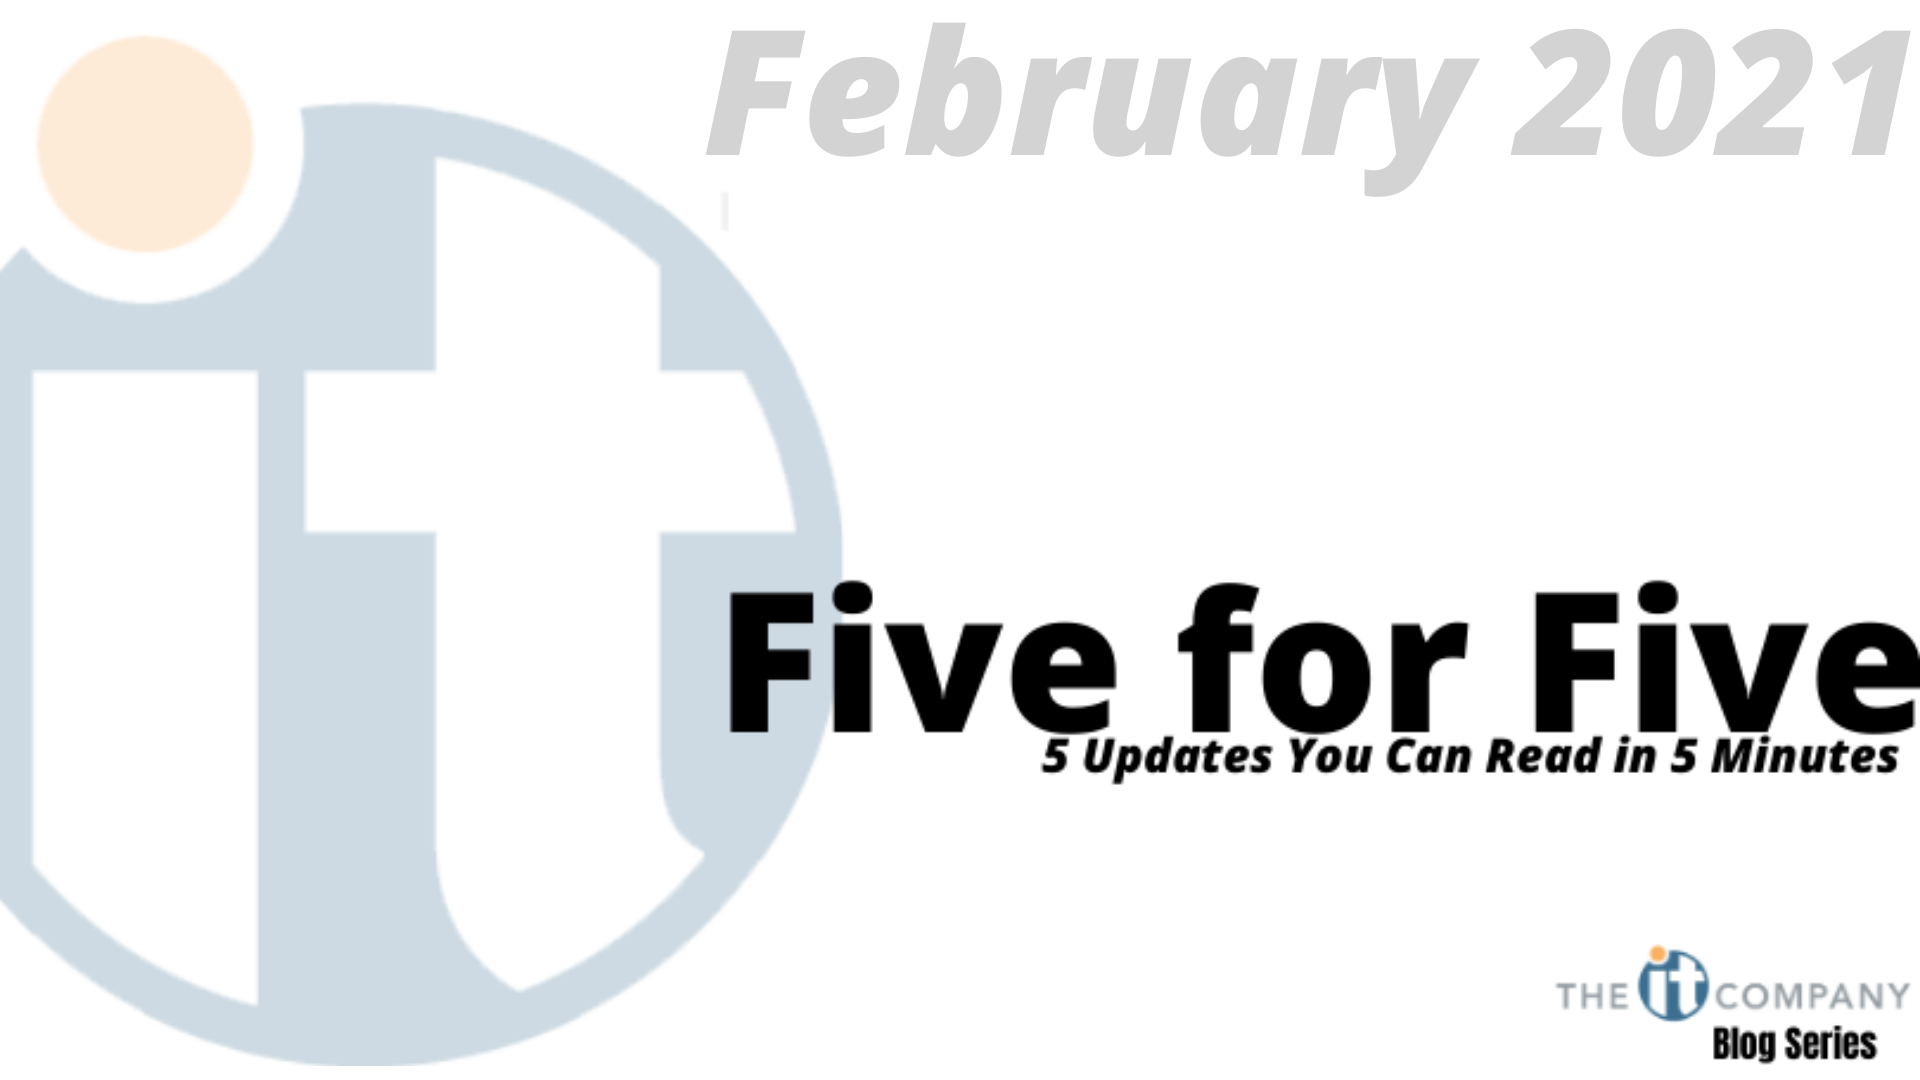 Five for Five: 5 Updated You Can Read in 5 Minutes